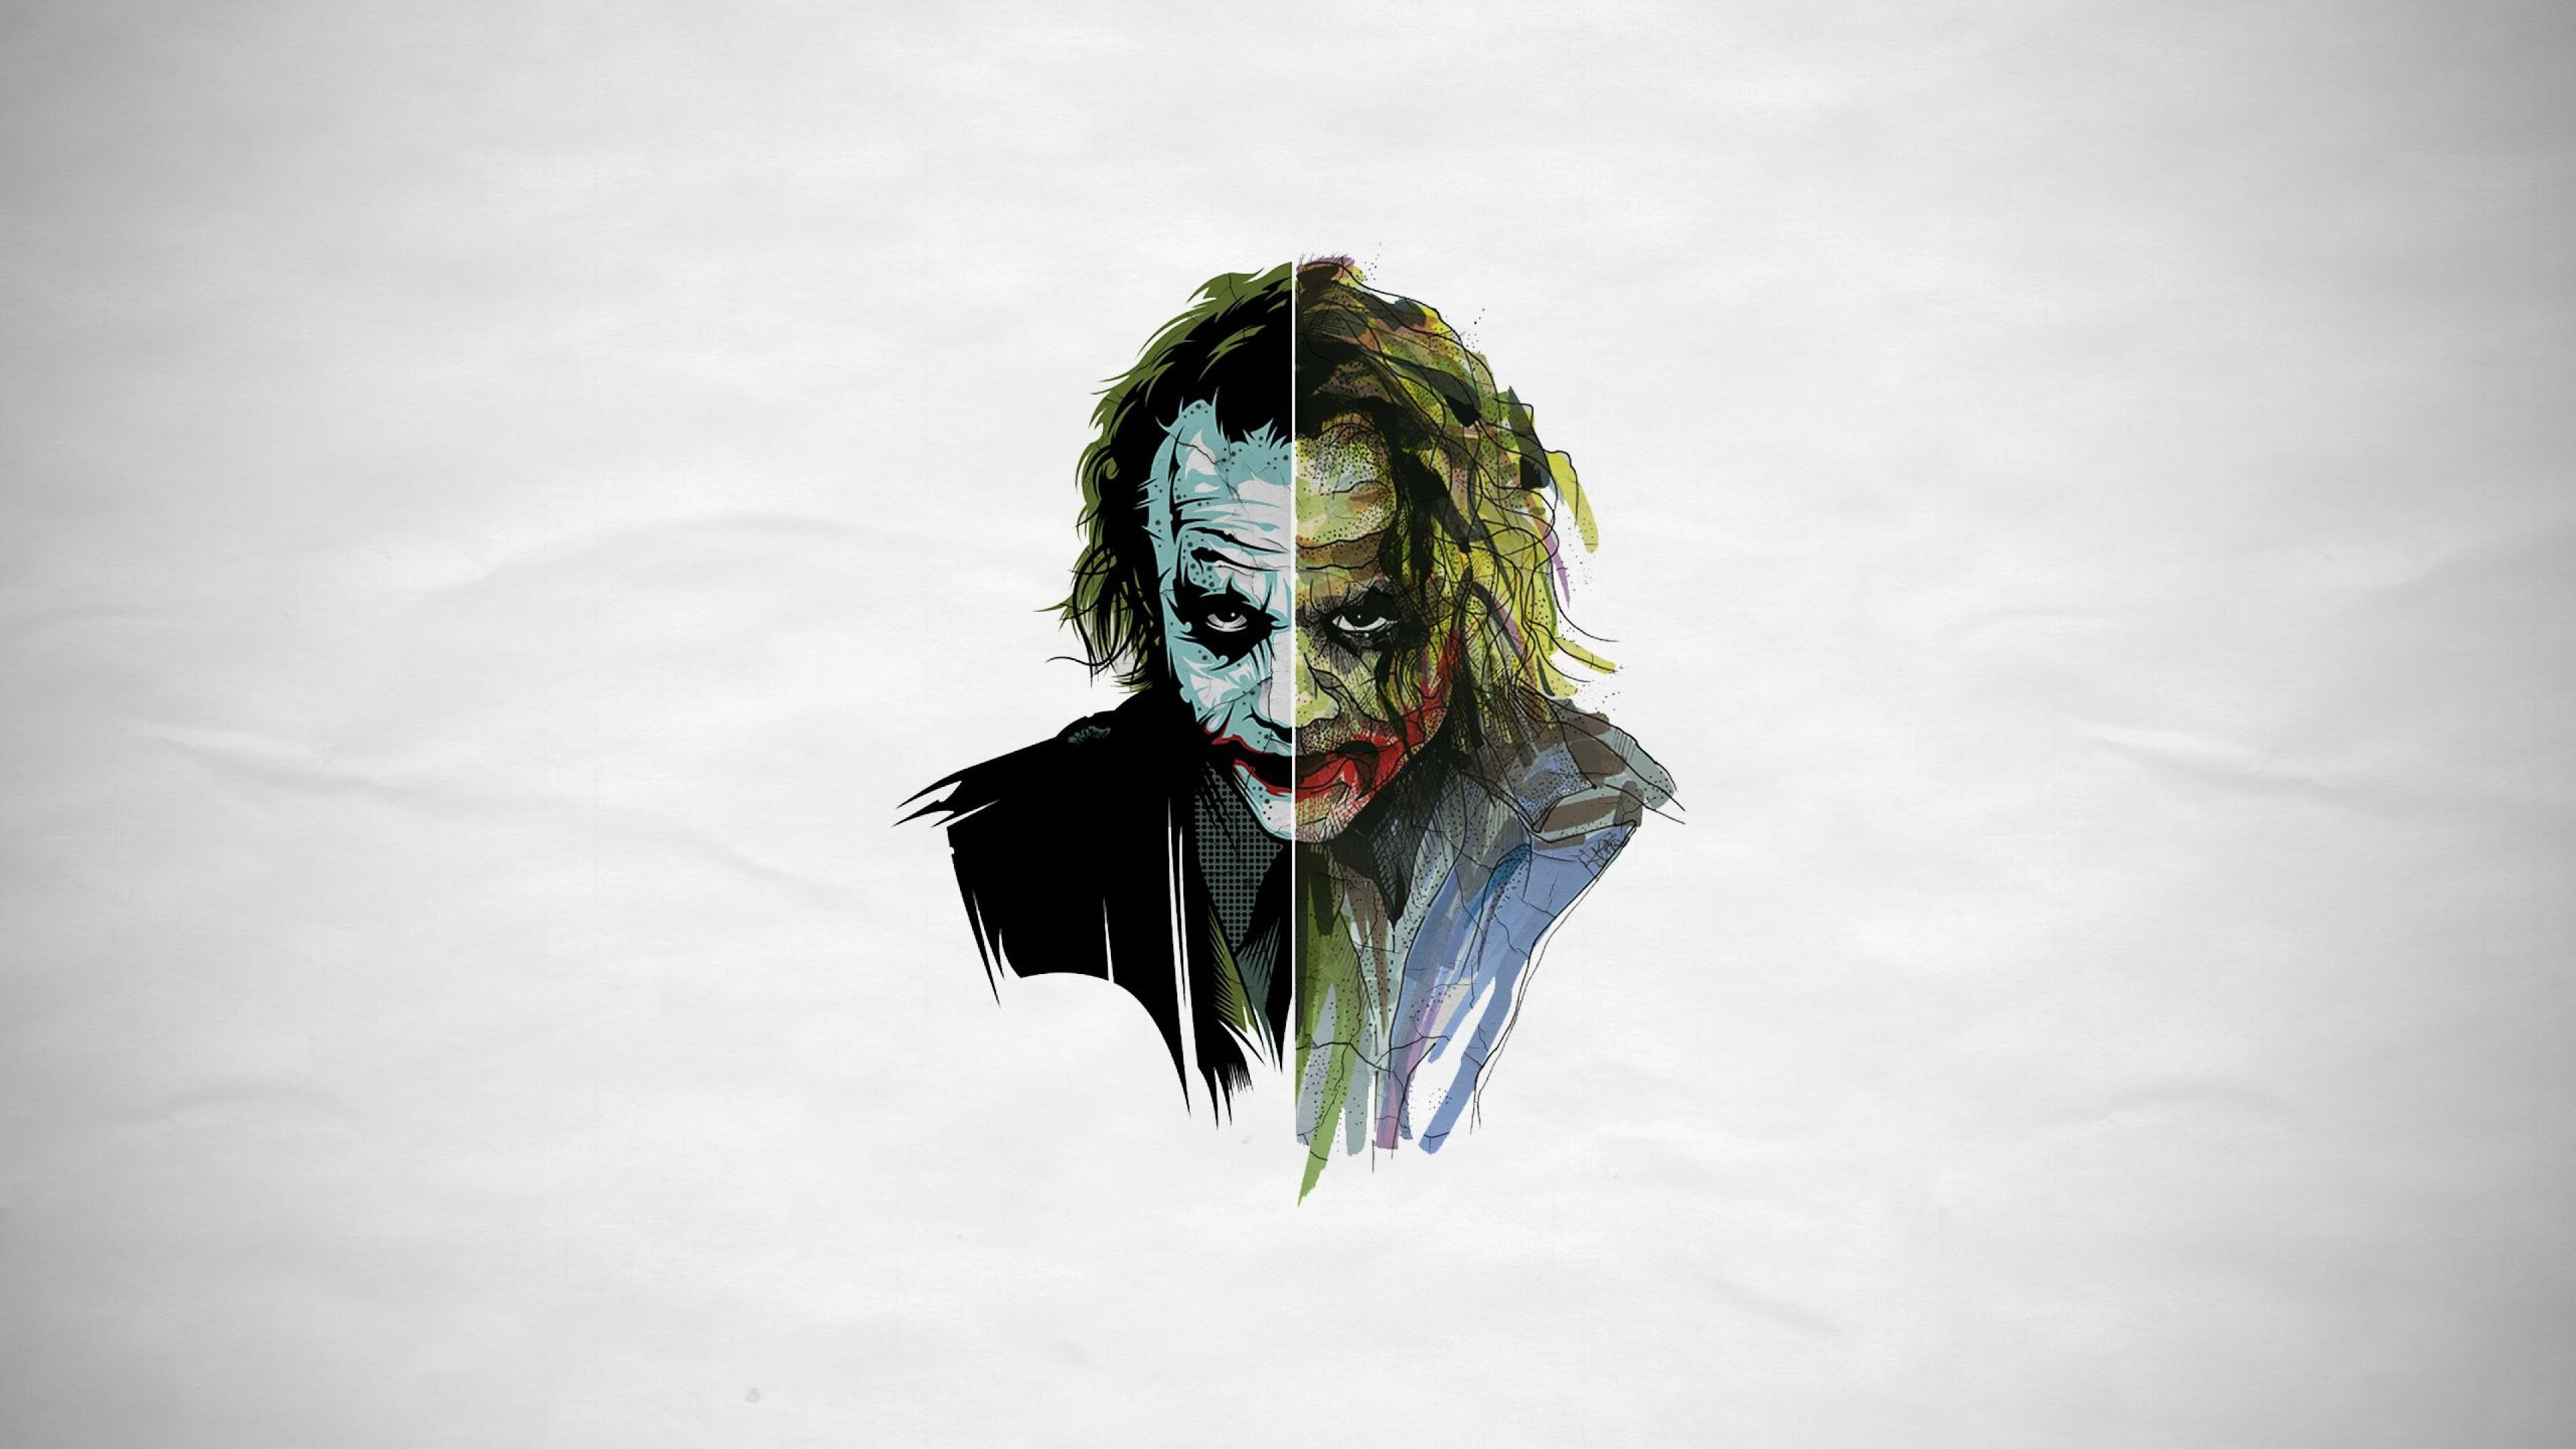 1920x1080 Joker 4k Laptop Full Hd 1080p Hd 4k Wallpapers Images Backgrounds Photos And Pictures